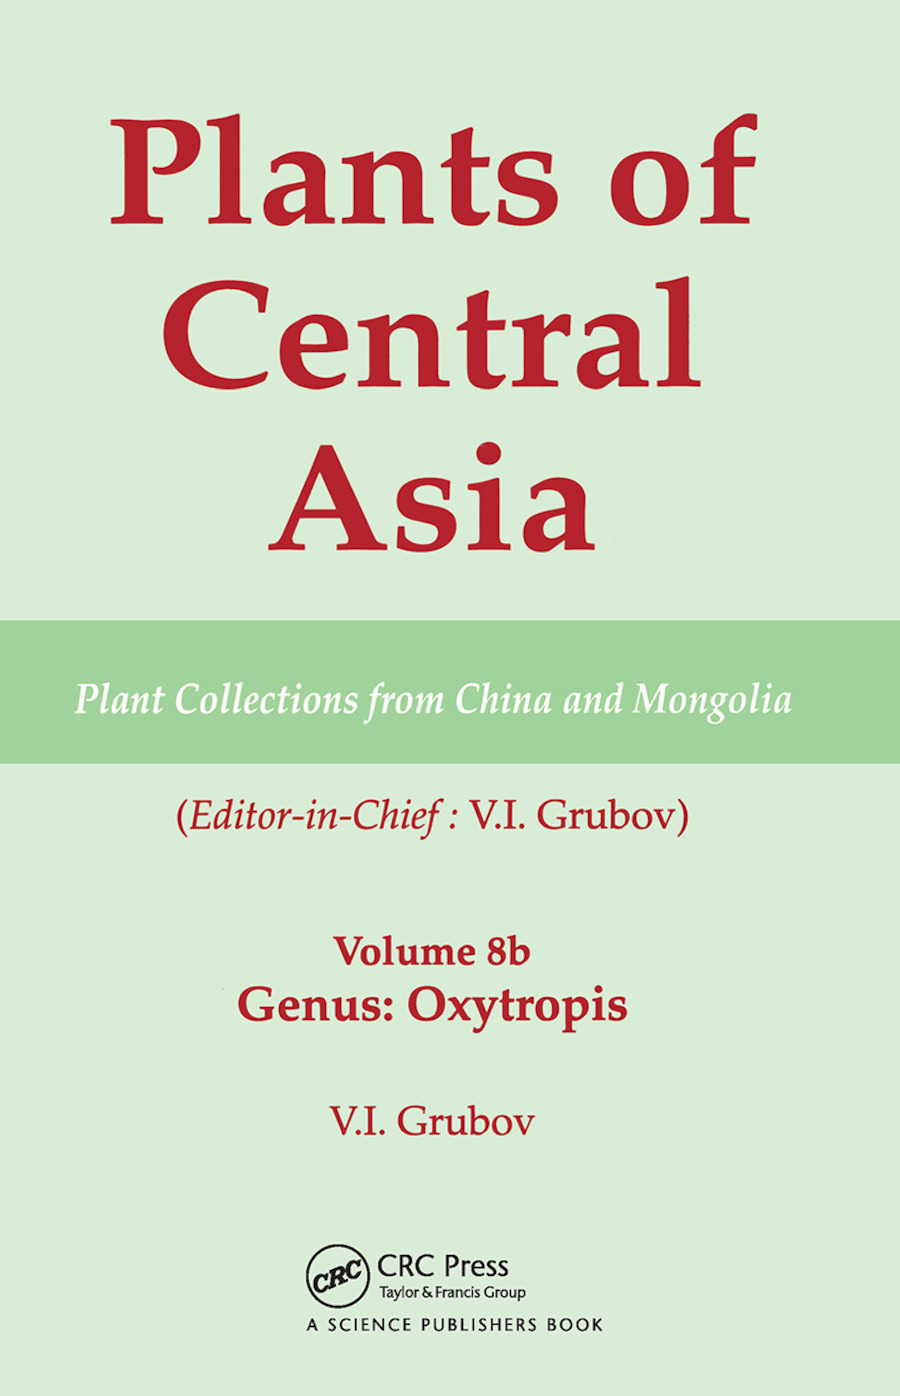 Plants of Central Asia - Plant Collection from China and Mongolia, Vol. 8b: Legumes, Genus: Oxytropis book cover